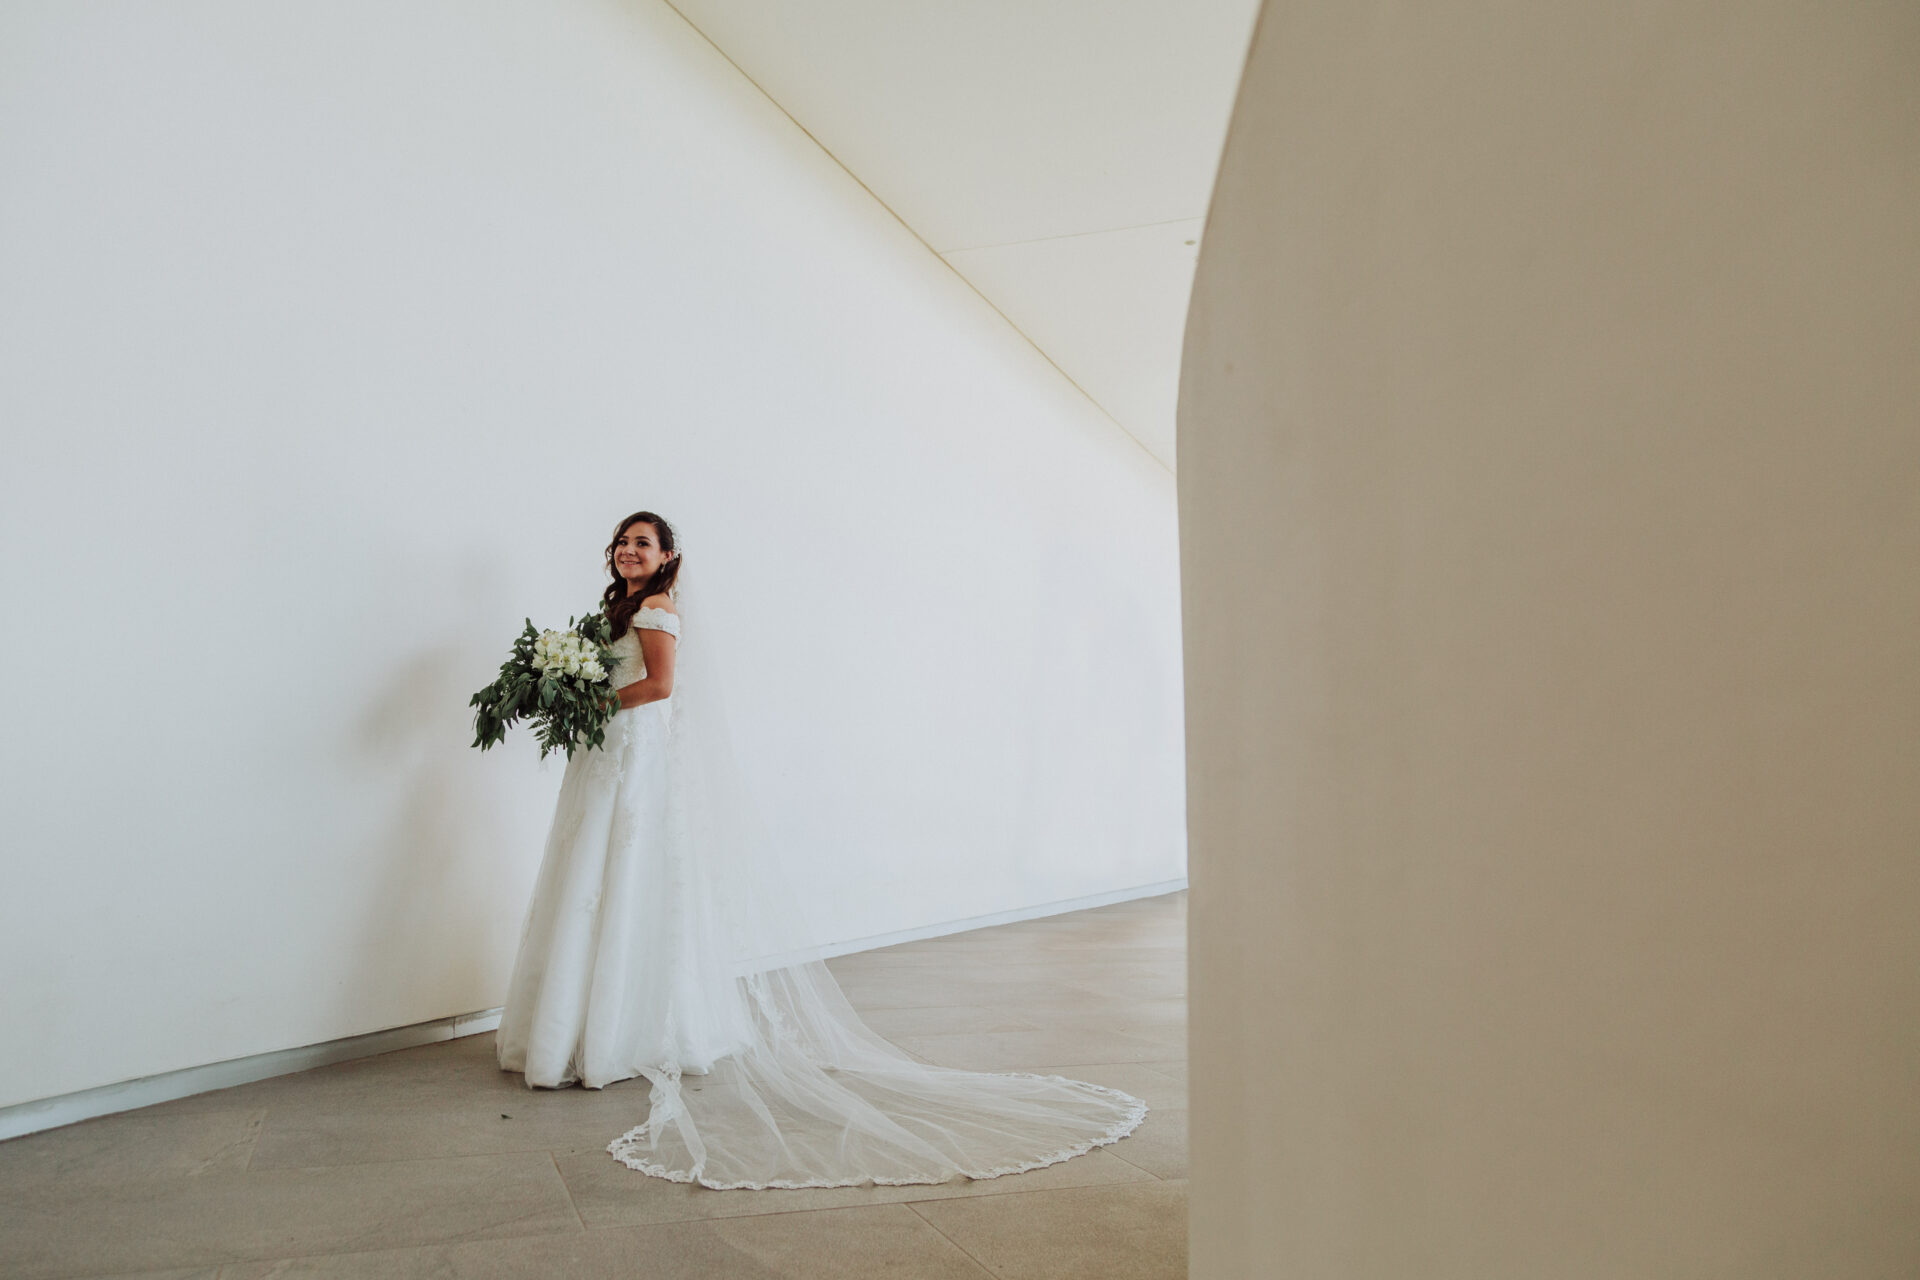 javier_noriega_fotografo_bodas_torreon_coahuila_zacatecas_wedding_photographer20a